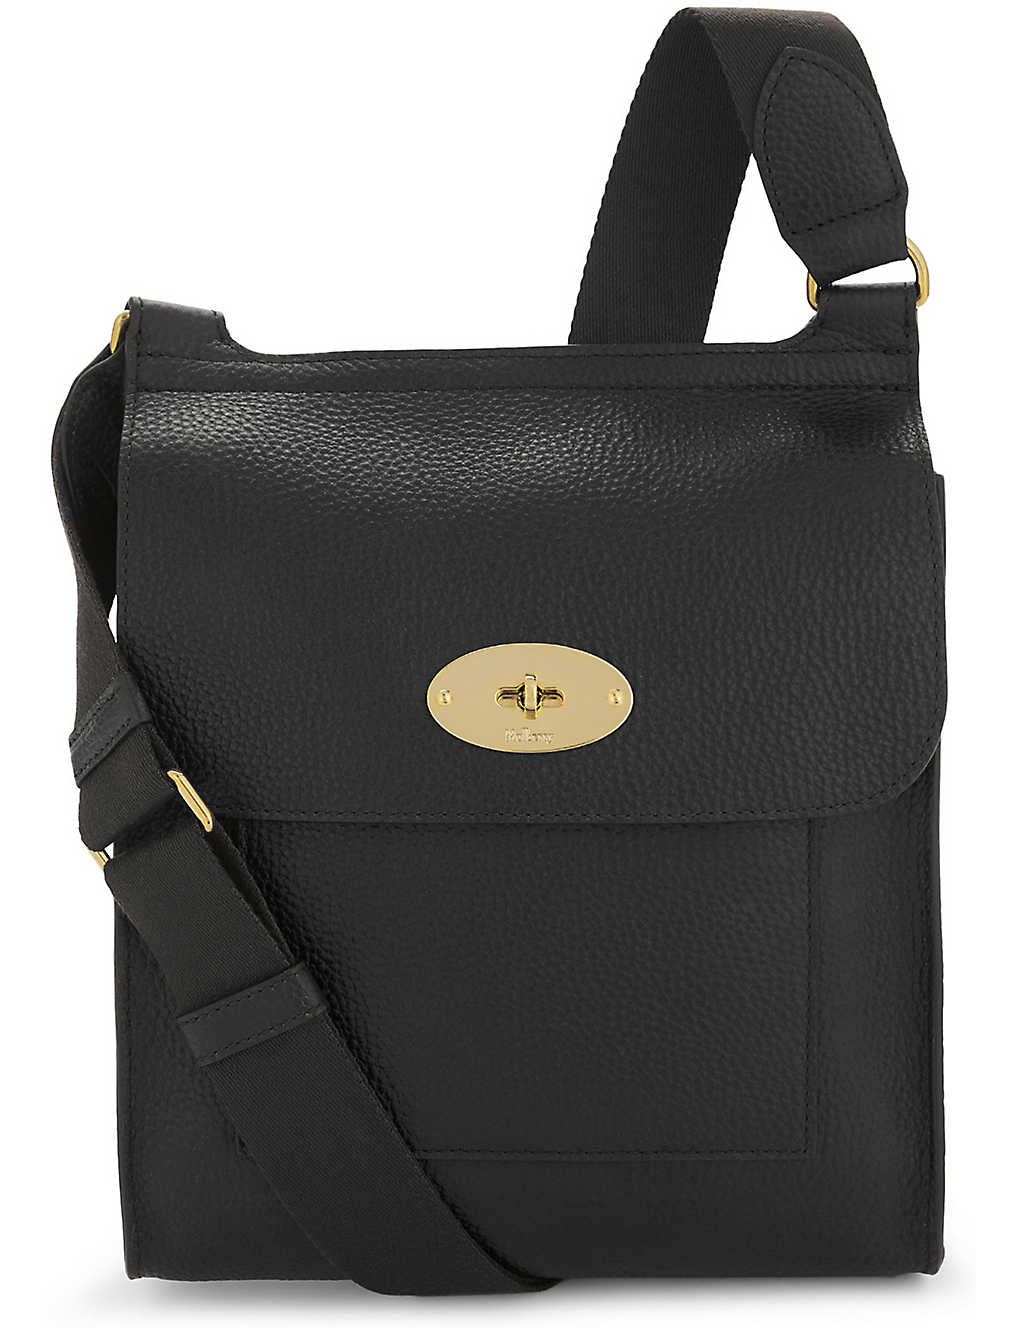 84eab69bfb20 MULBERRY - Antony grained leather cross-body bag